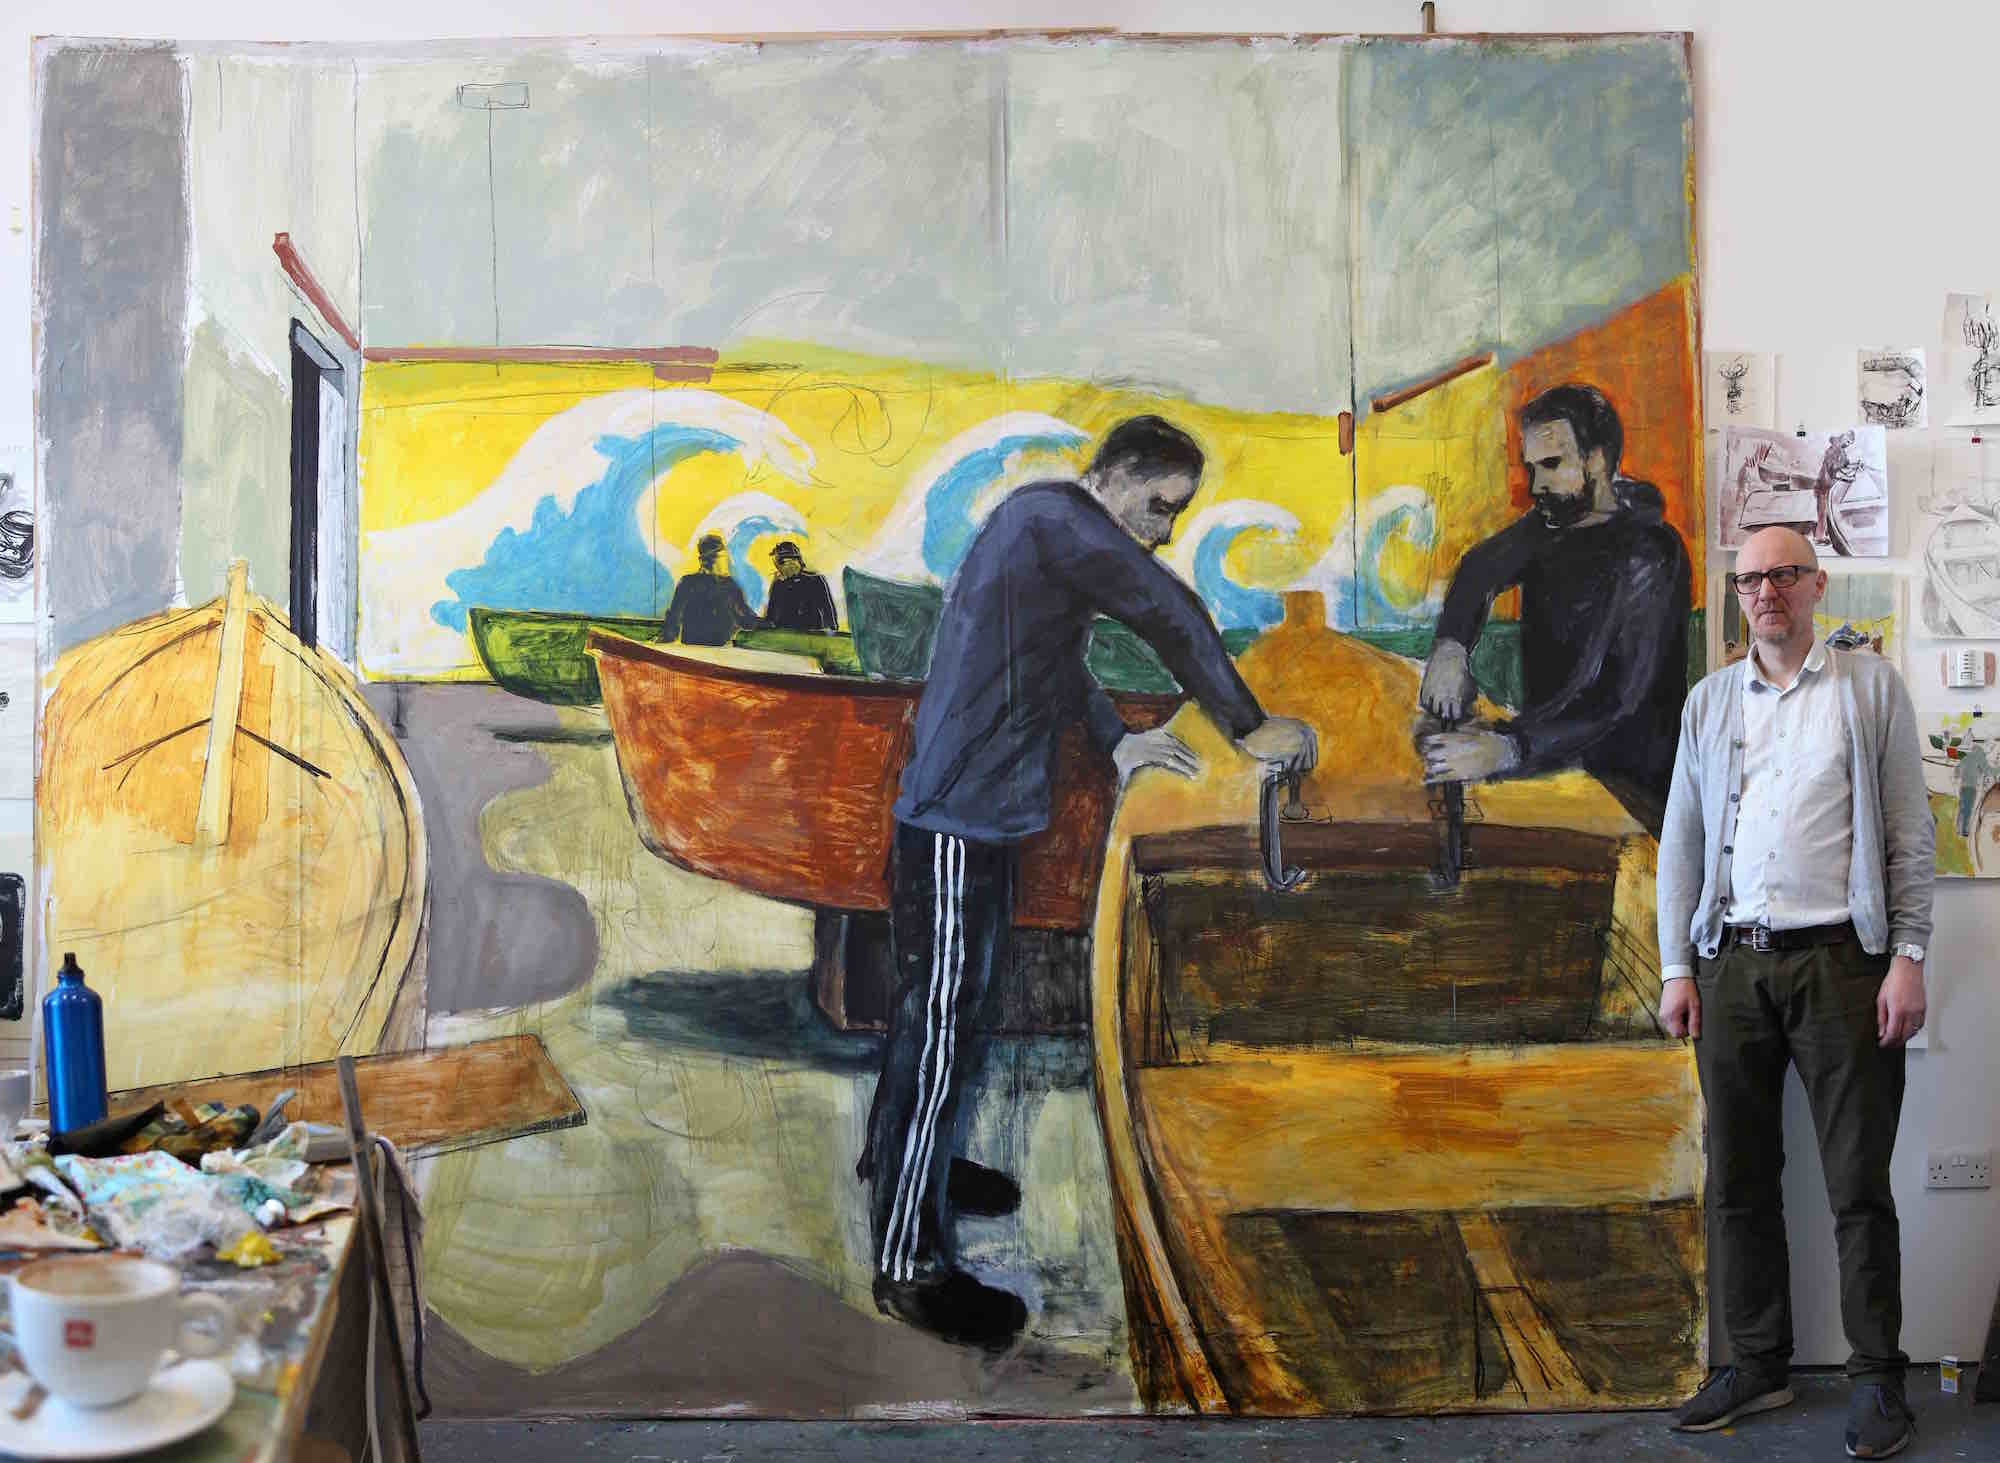 1 Boatbuilders, work in progress Feb 2018